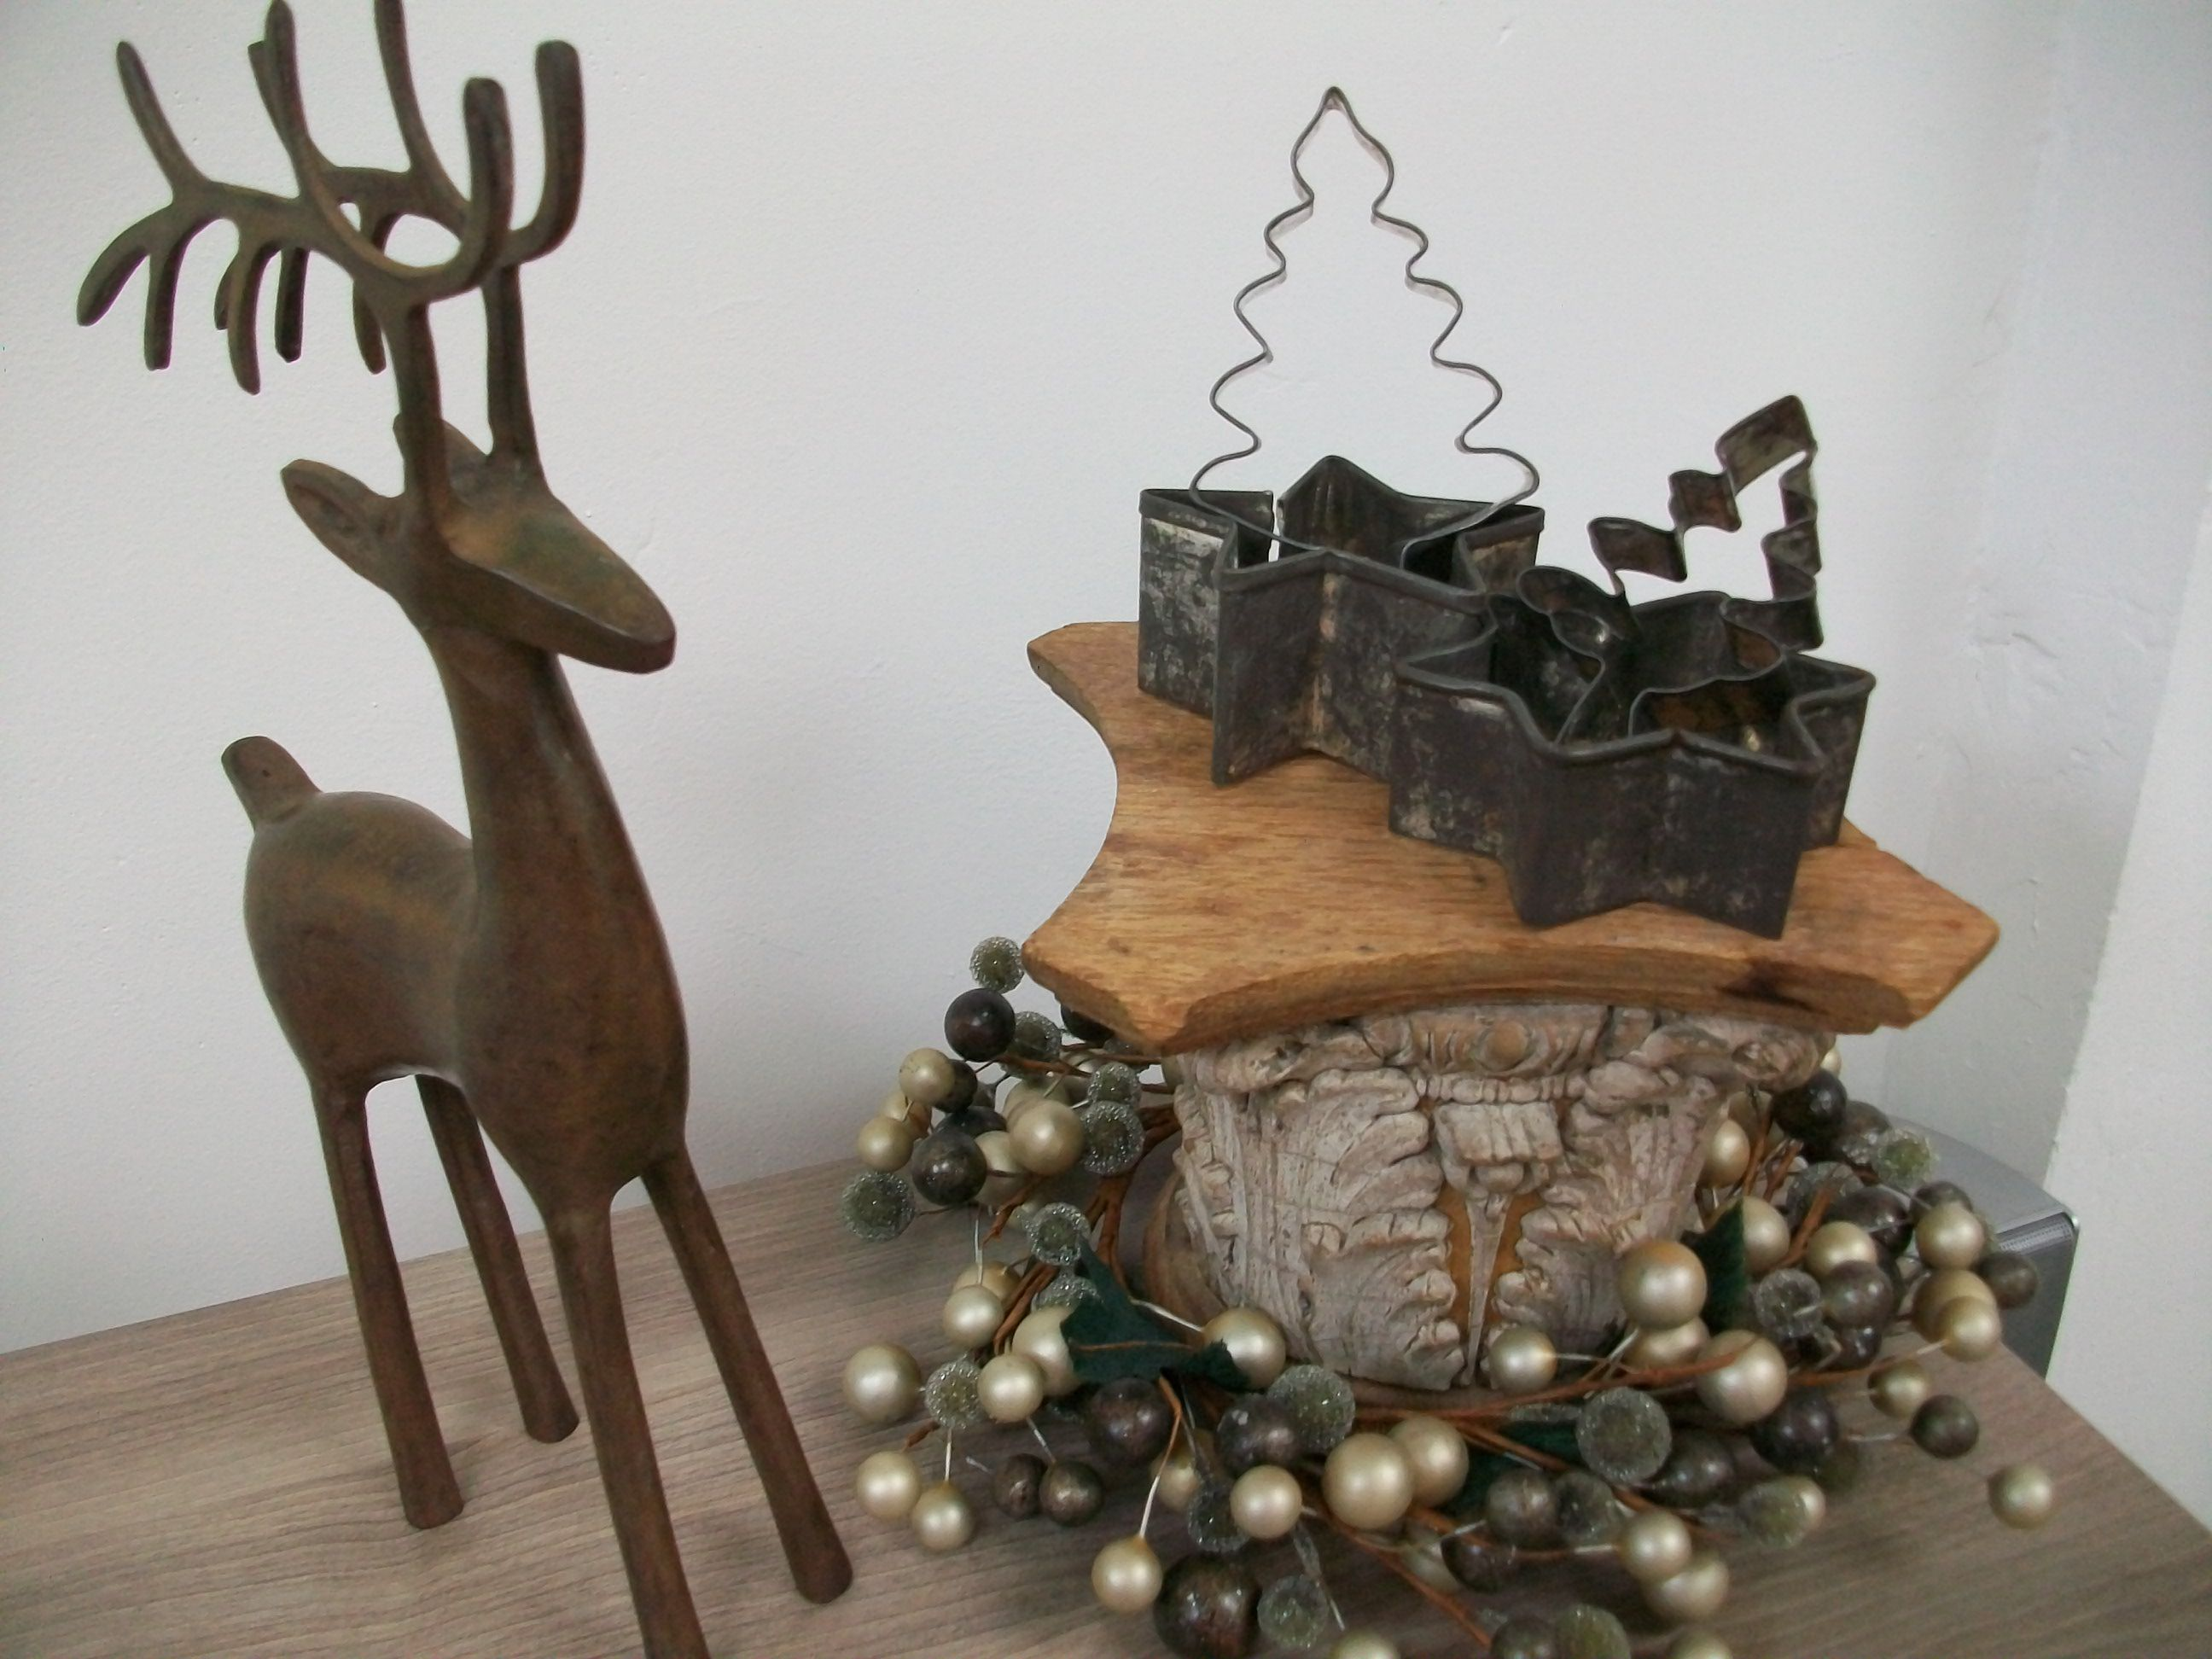 Reindeer, mini green/gold berry wreath, salvaged wooden capital, vintage tree & star cookie cutters.